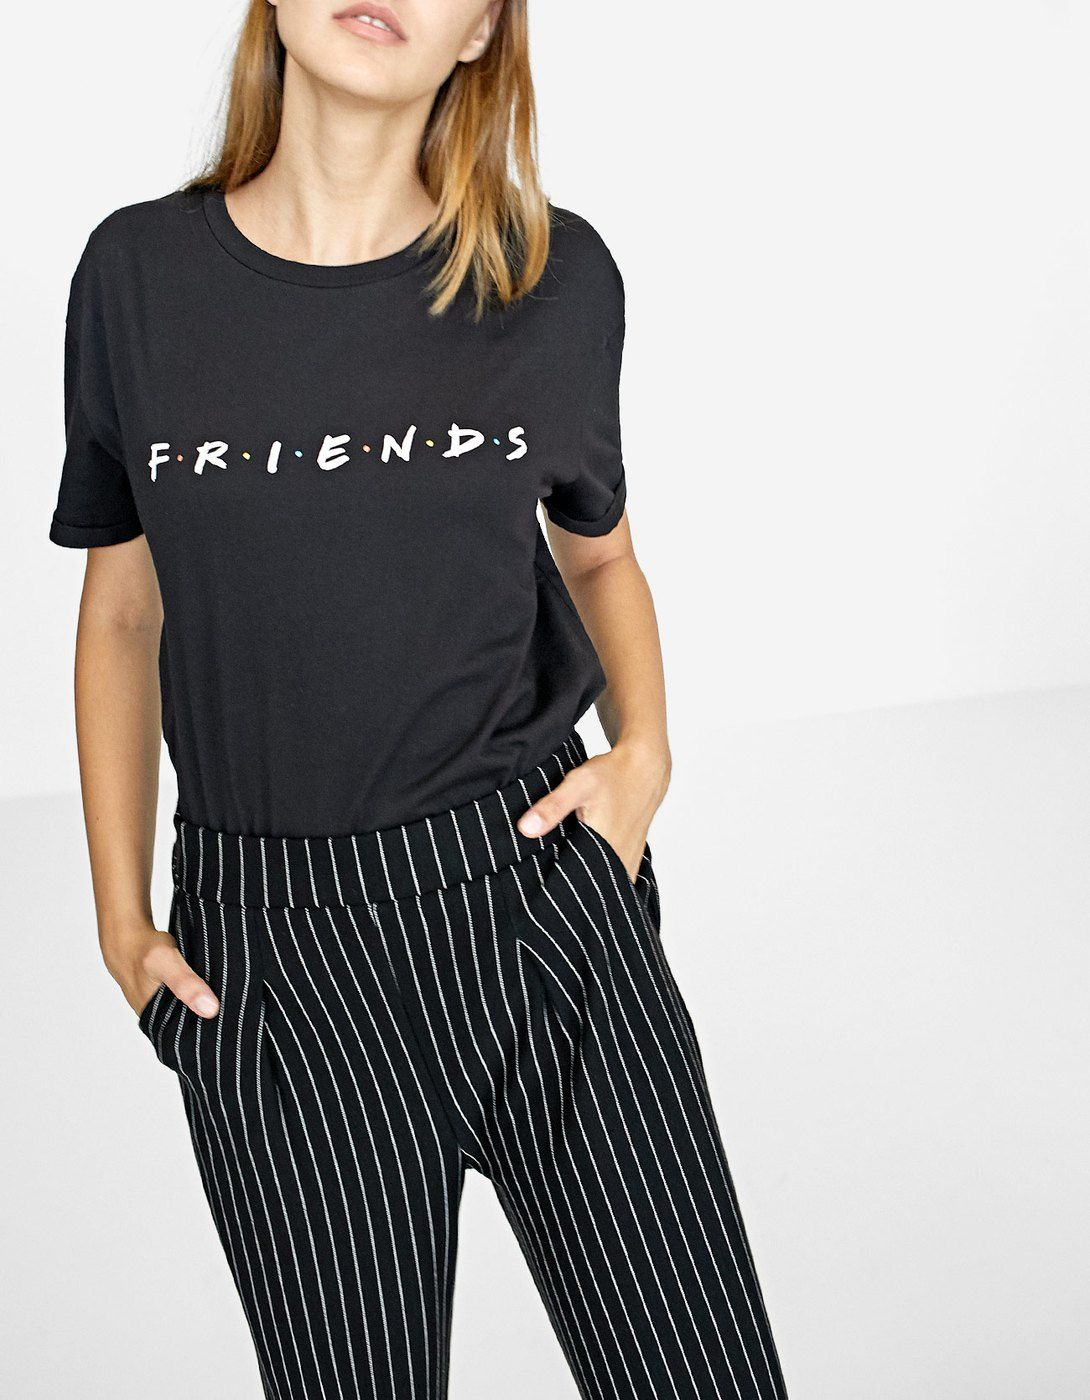 214b1223c0 Friends T-shirt - Just in